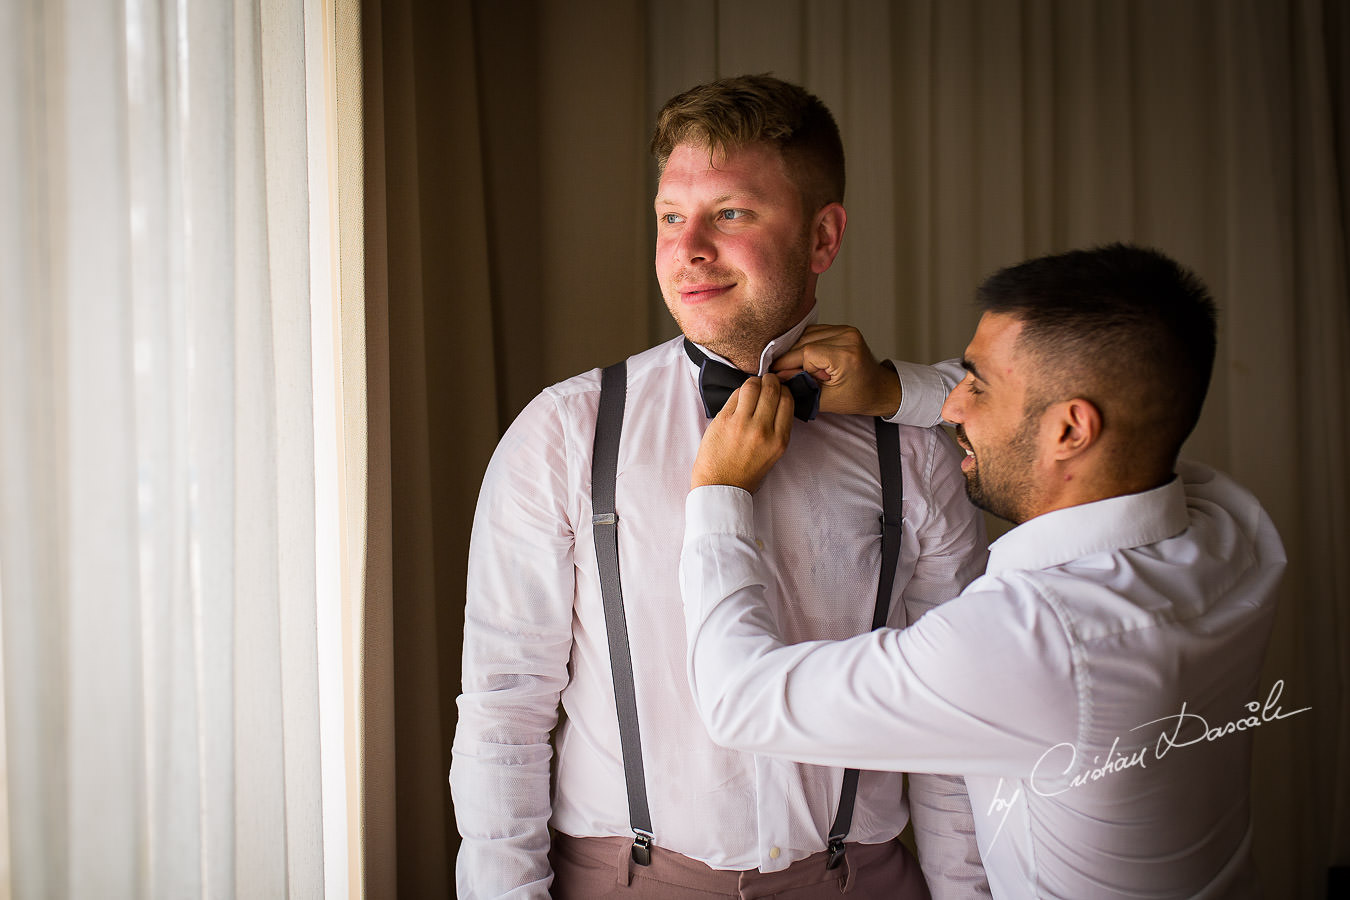 Groom and best man at a Beautiful Wedding at Elias Beach Hotel captured by Cyprus Photographer Cristian Dascalu.